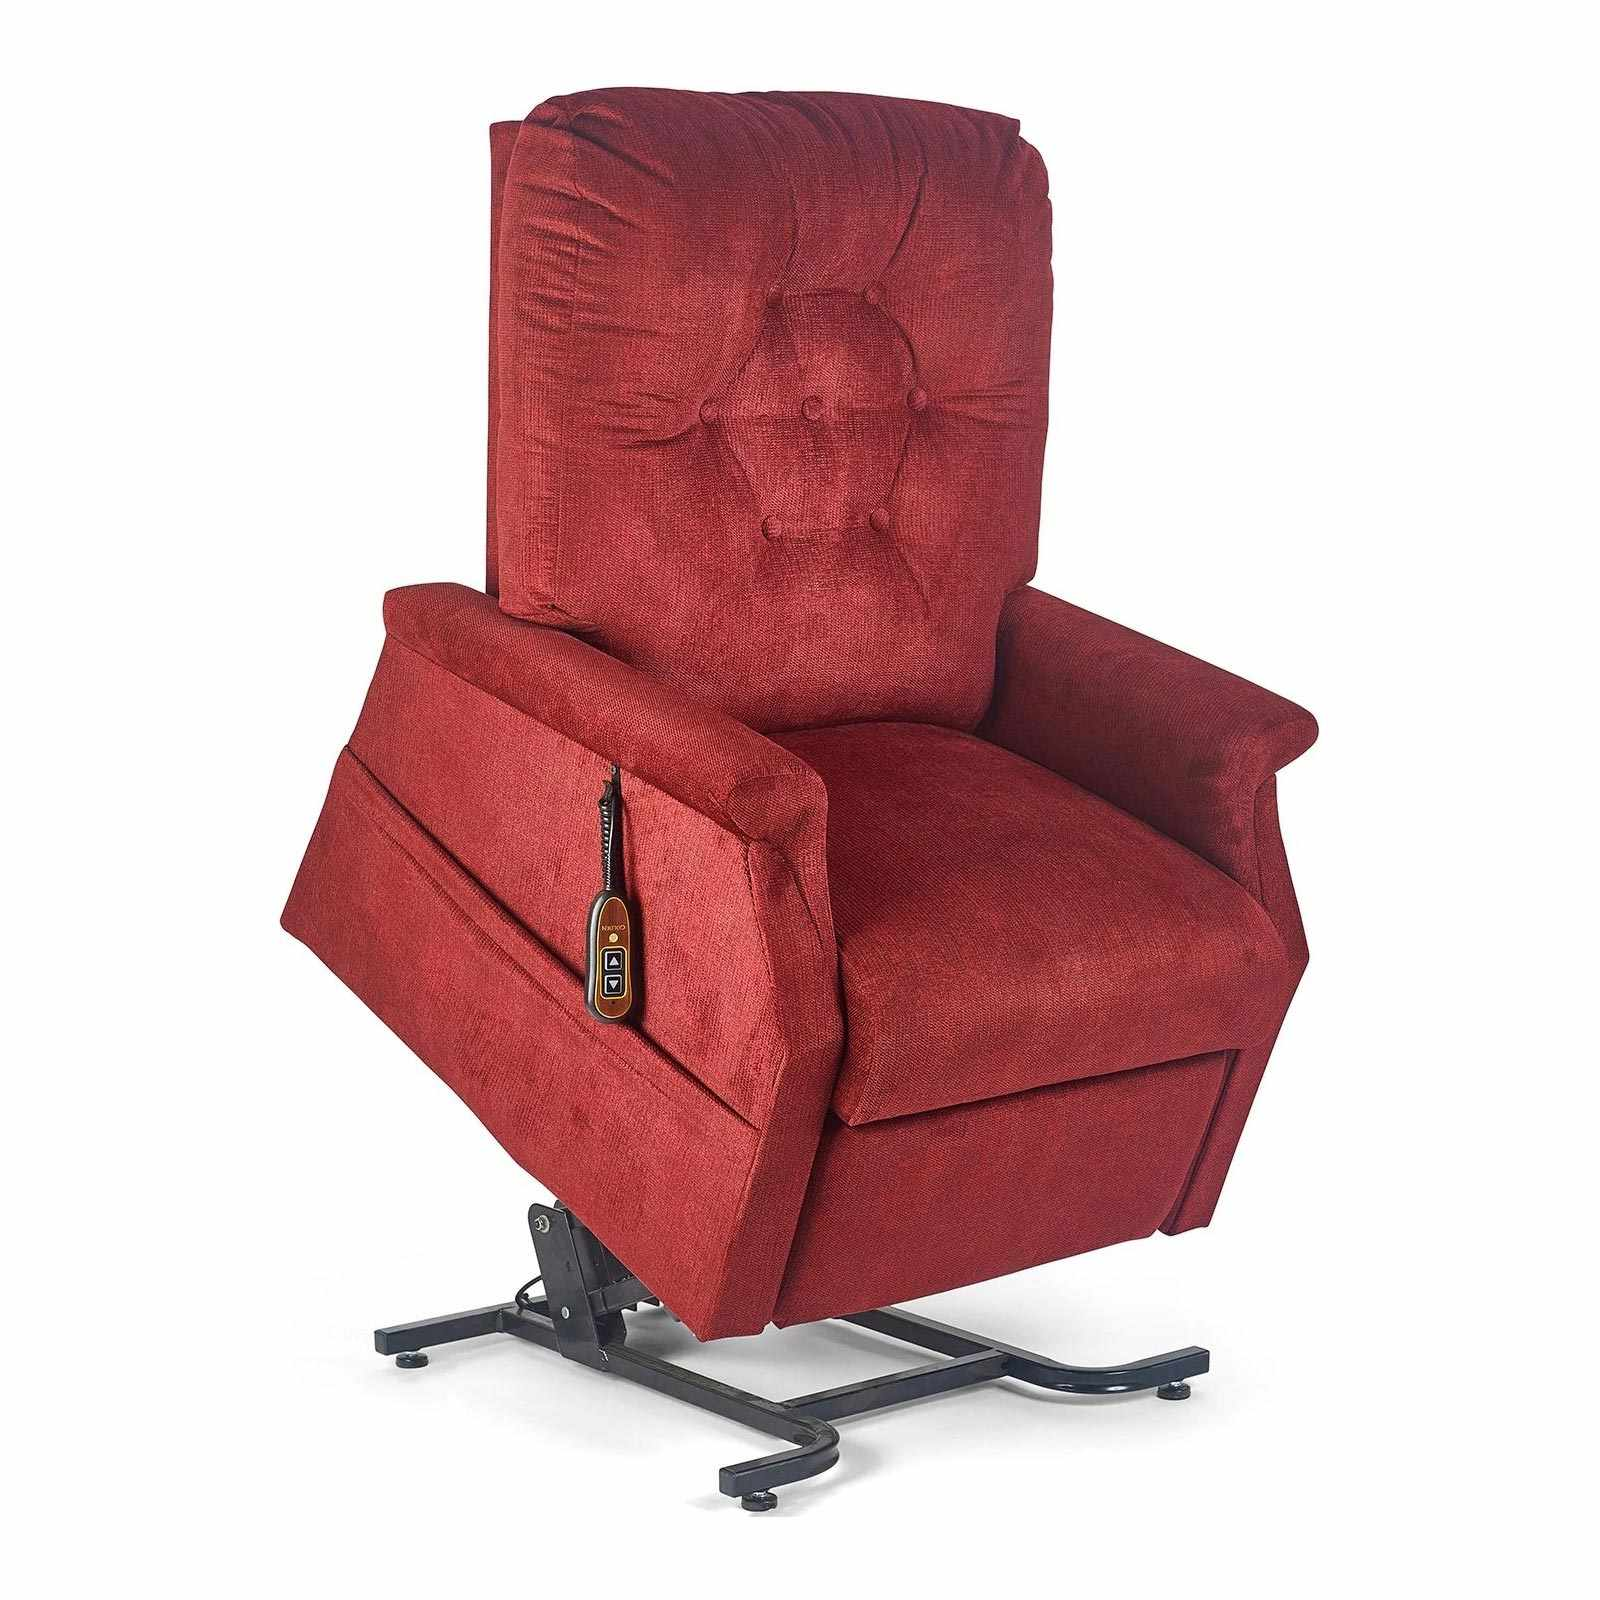 Golden Technologies Capri 2-position lift chair